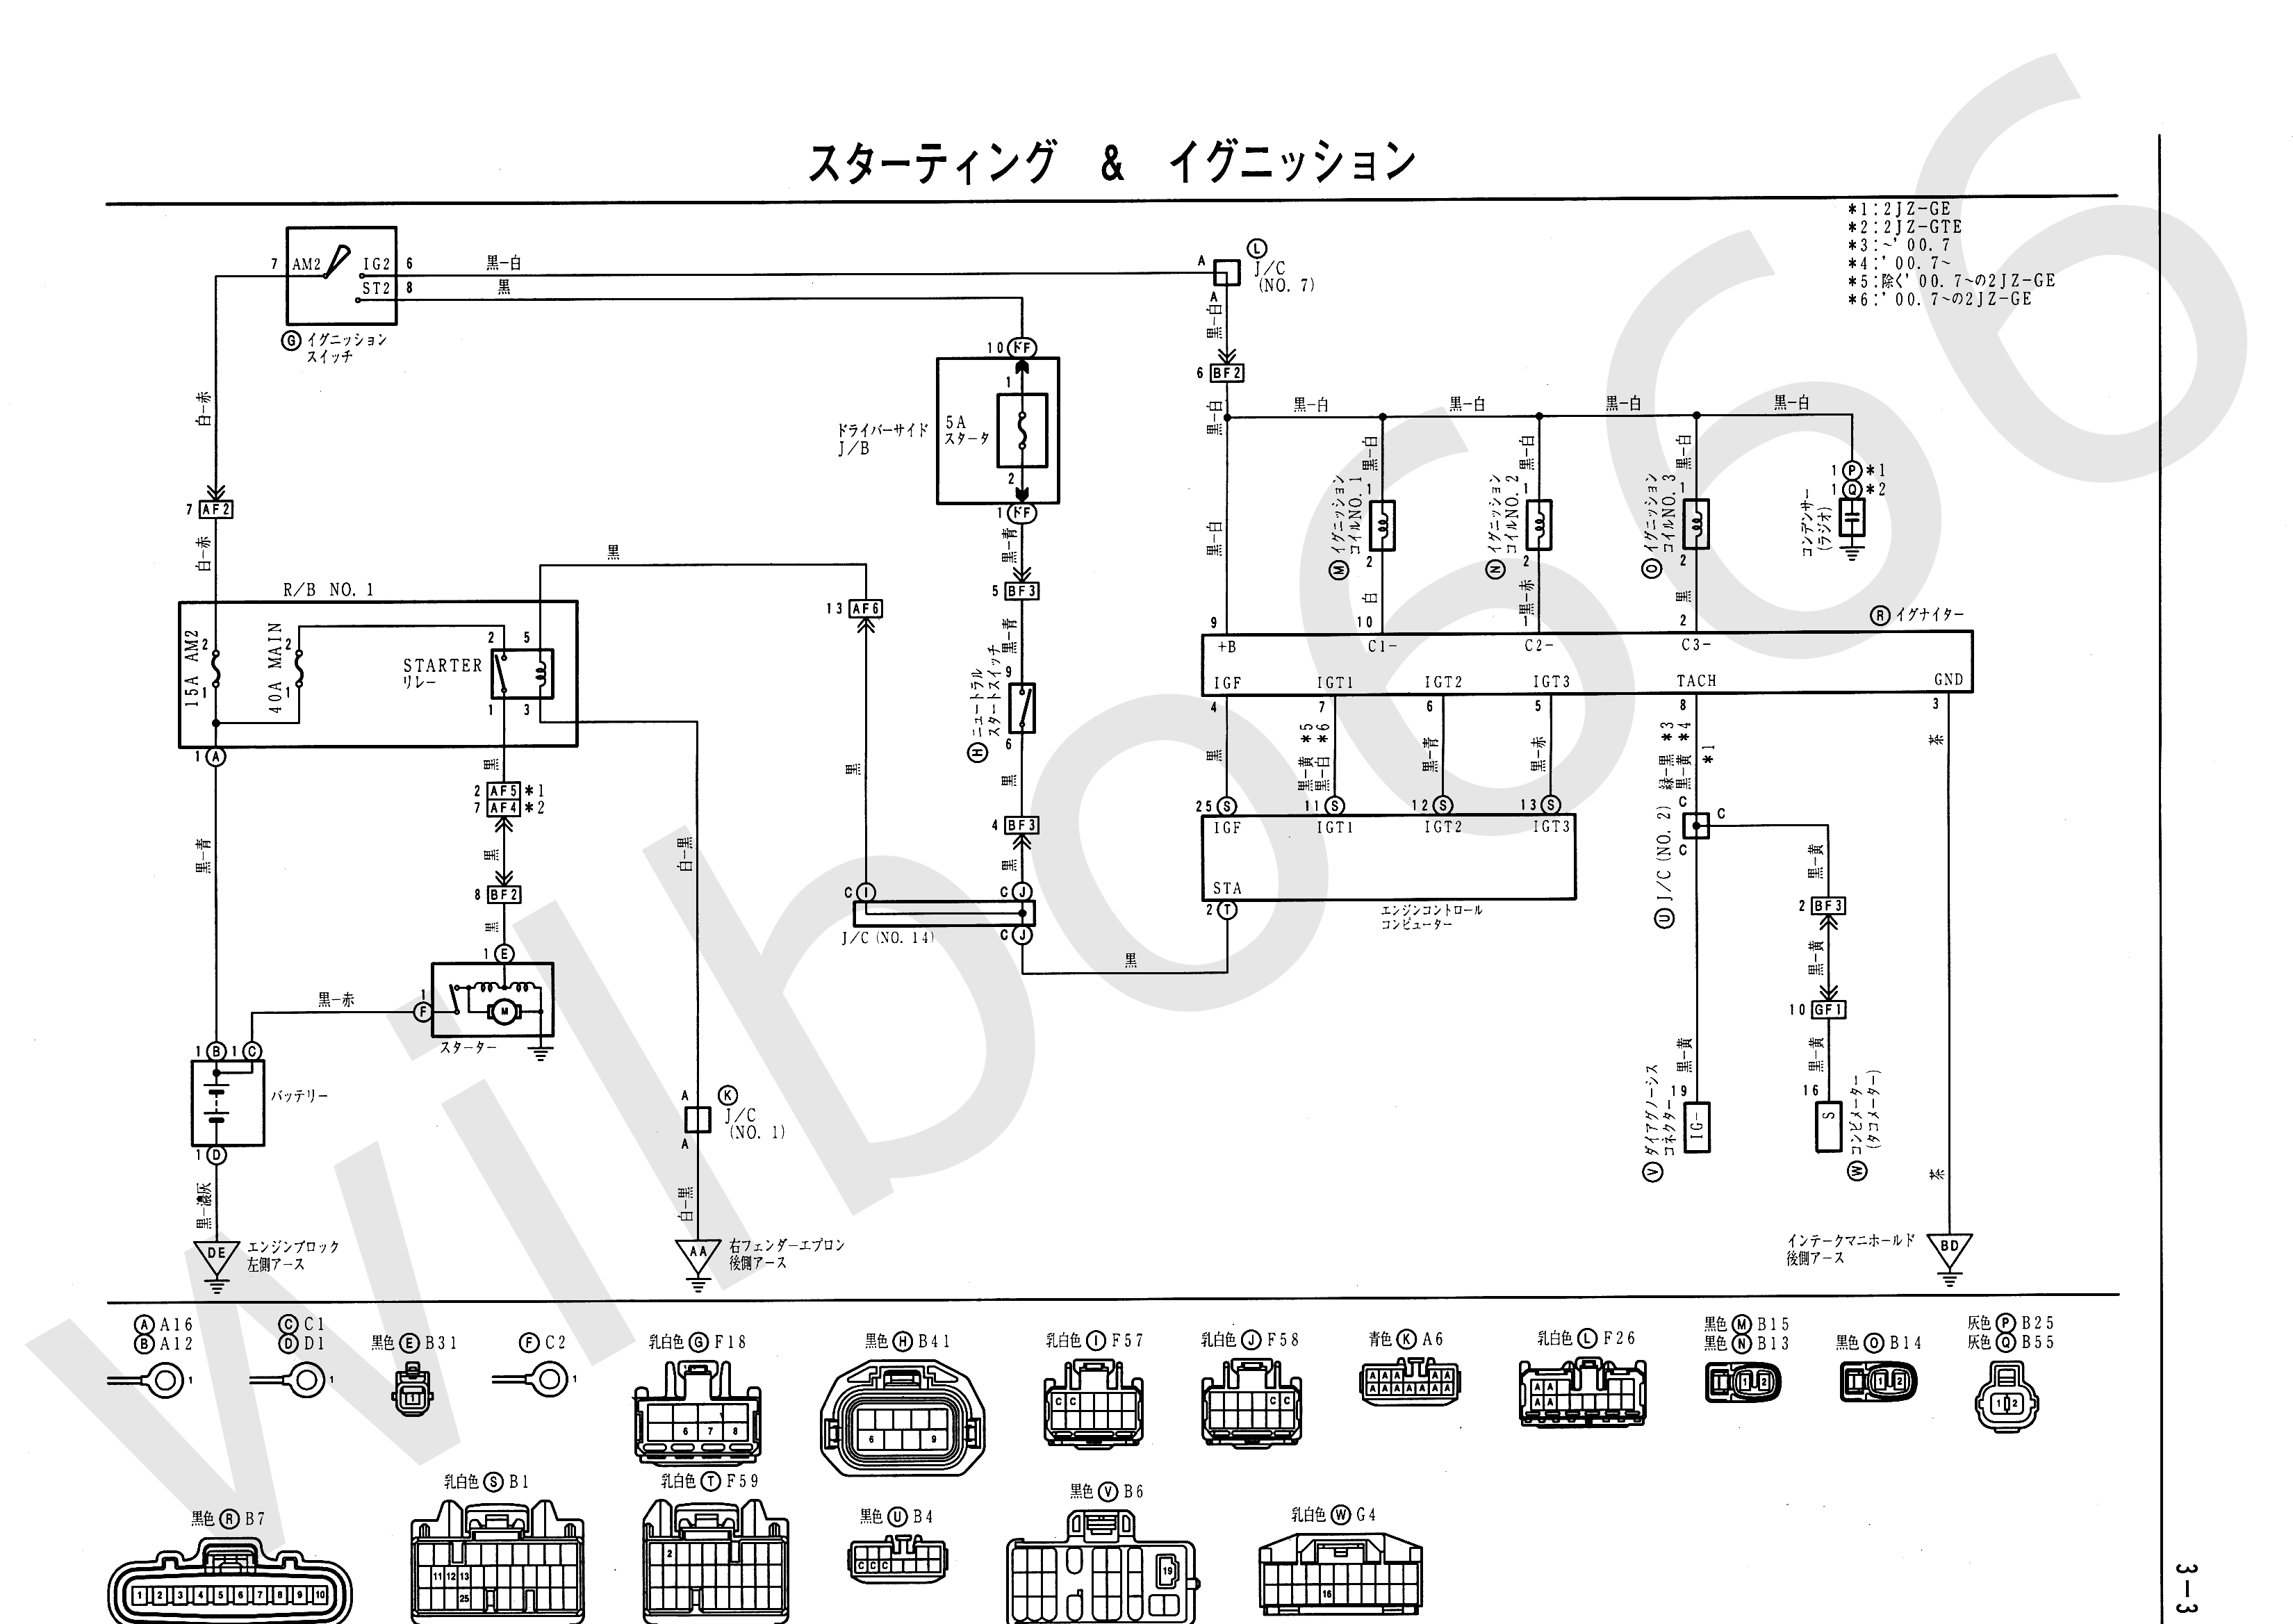 Honda Civic Wiring Diagram On 1996 Toyota Camry Ecm Wiring Diagram